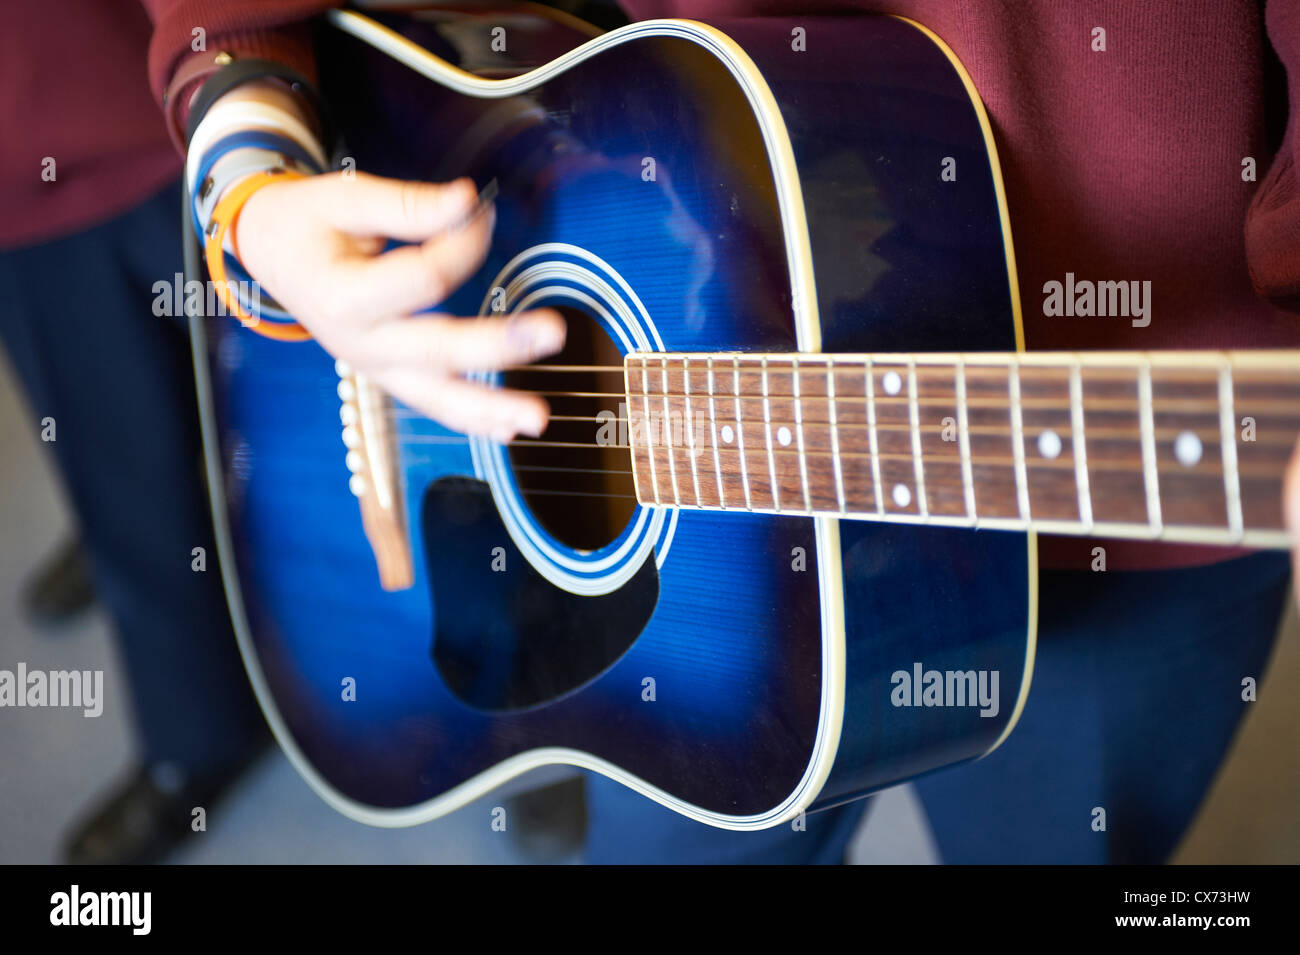 playing guitar - Stock Image